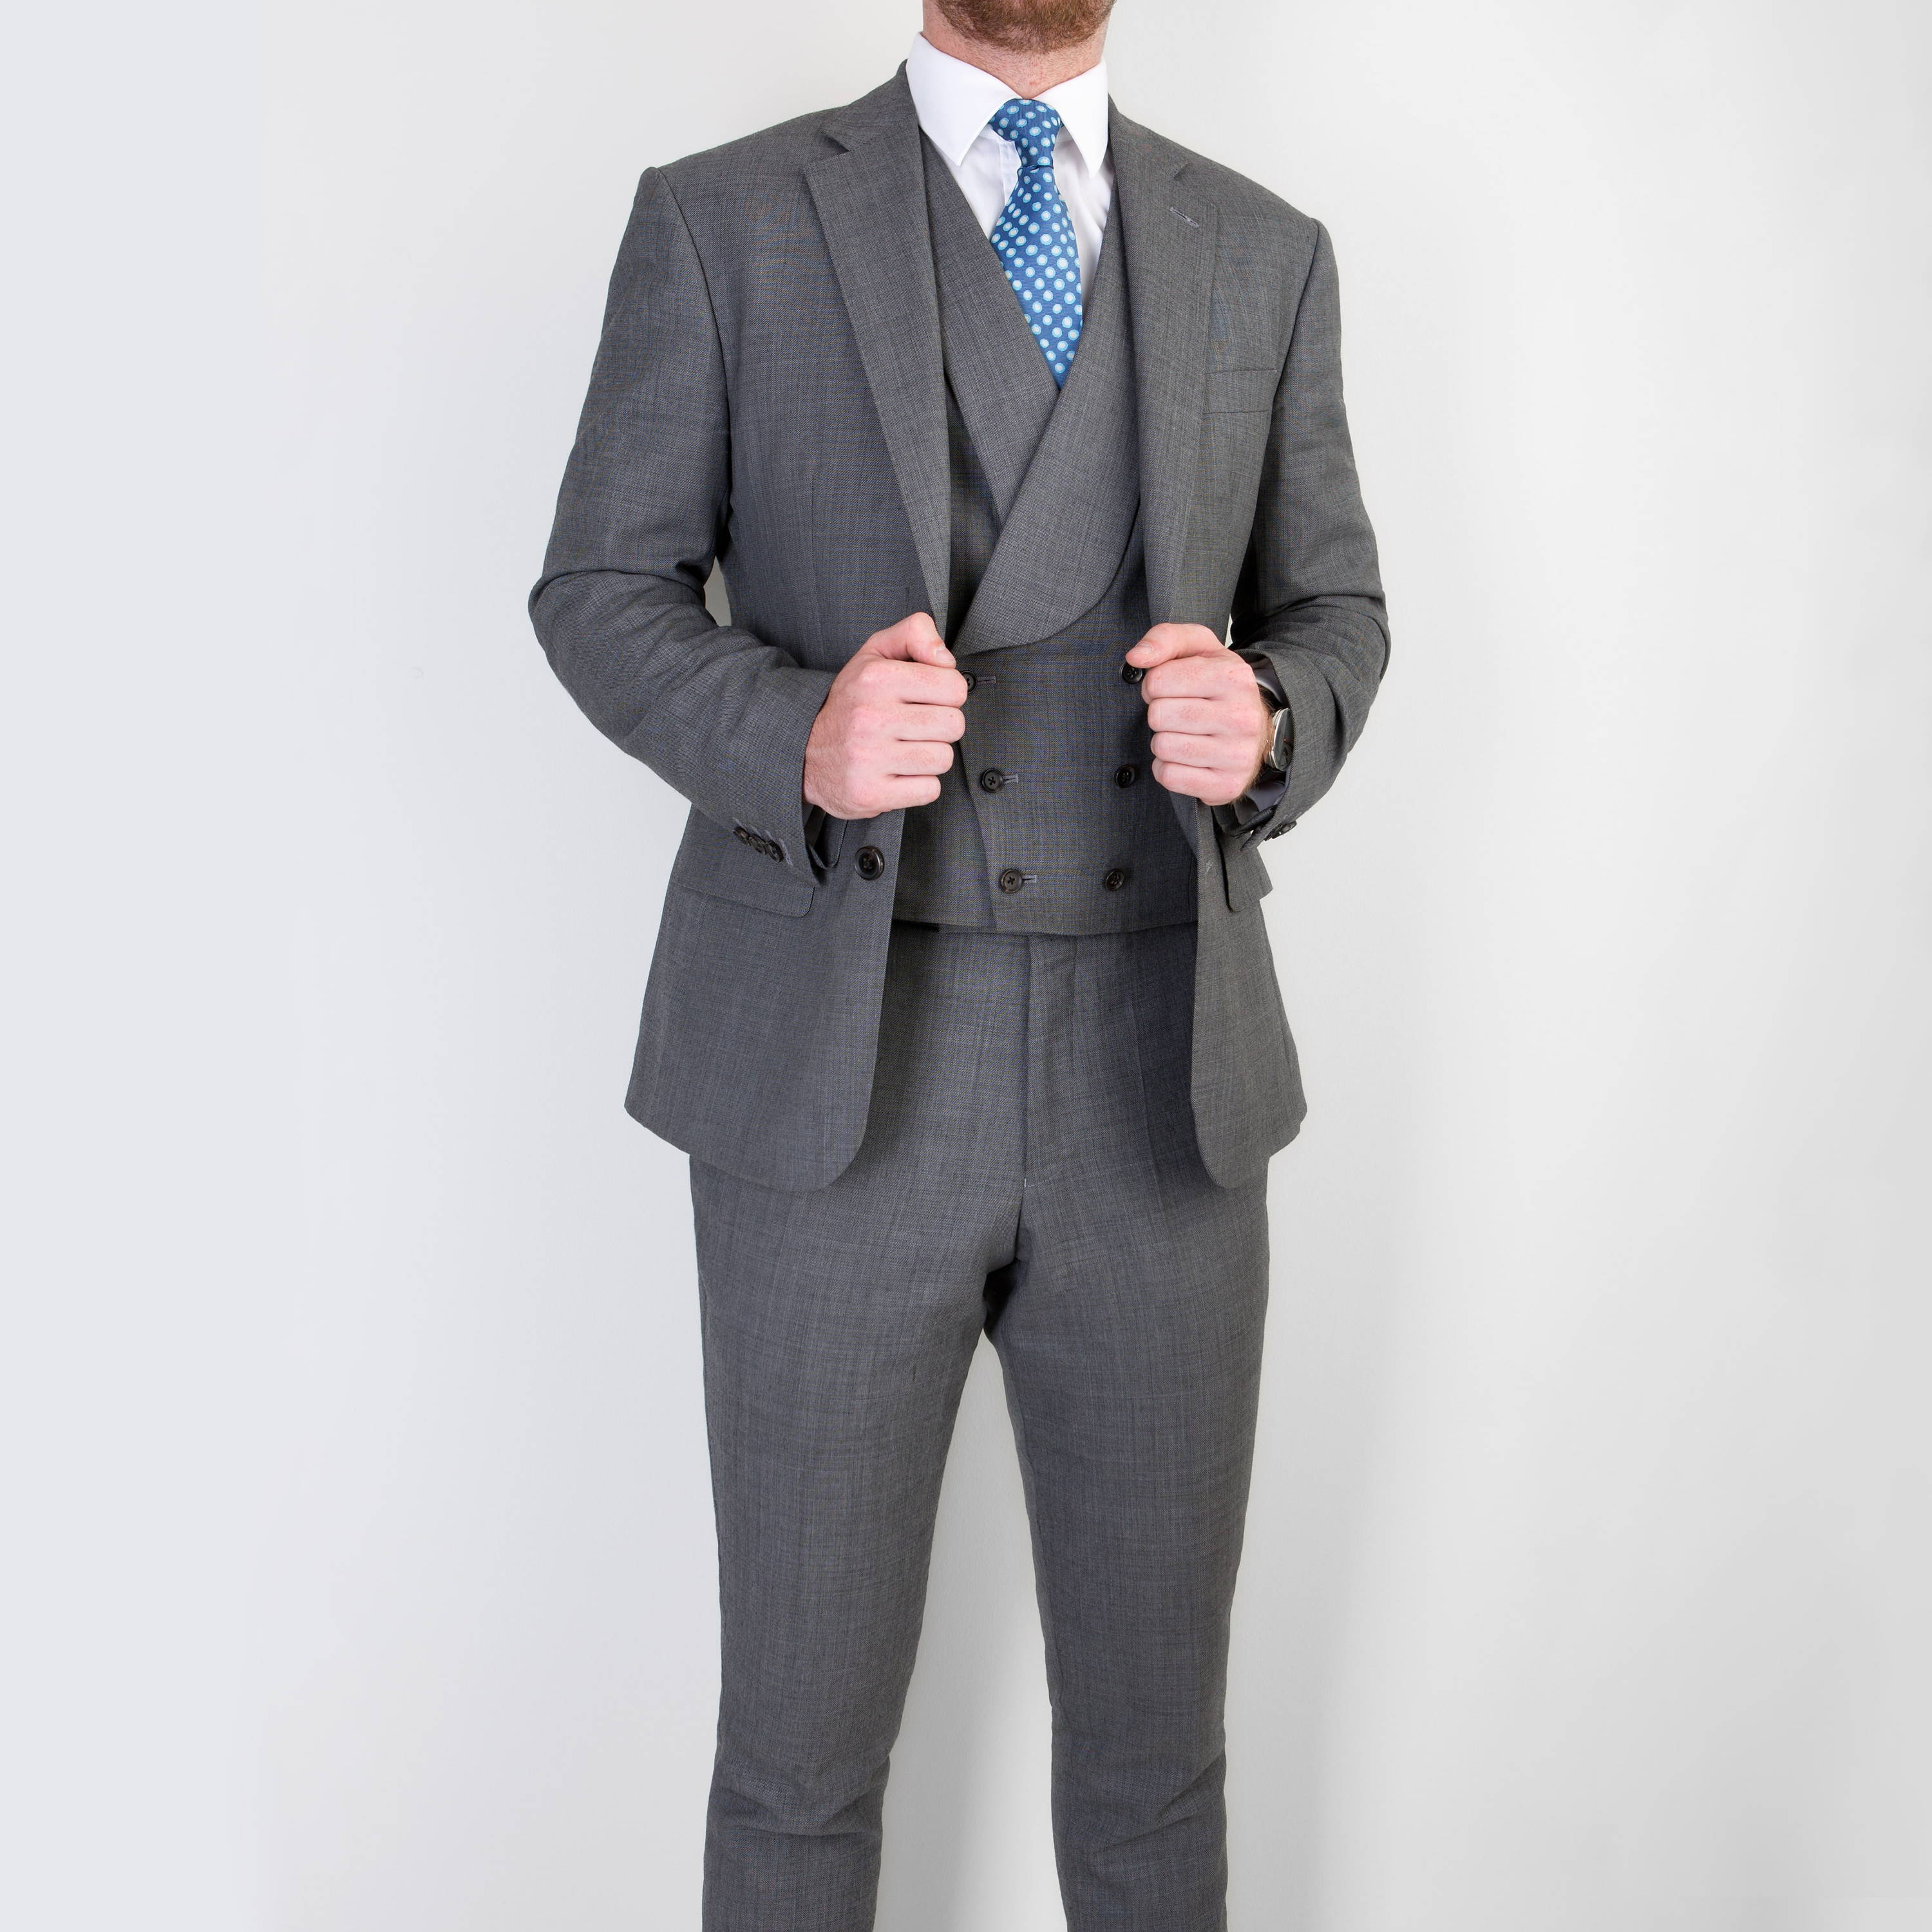 Bespoke three piece suit by bespoke yorkshire tailors Mullen and Mullen